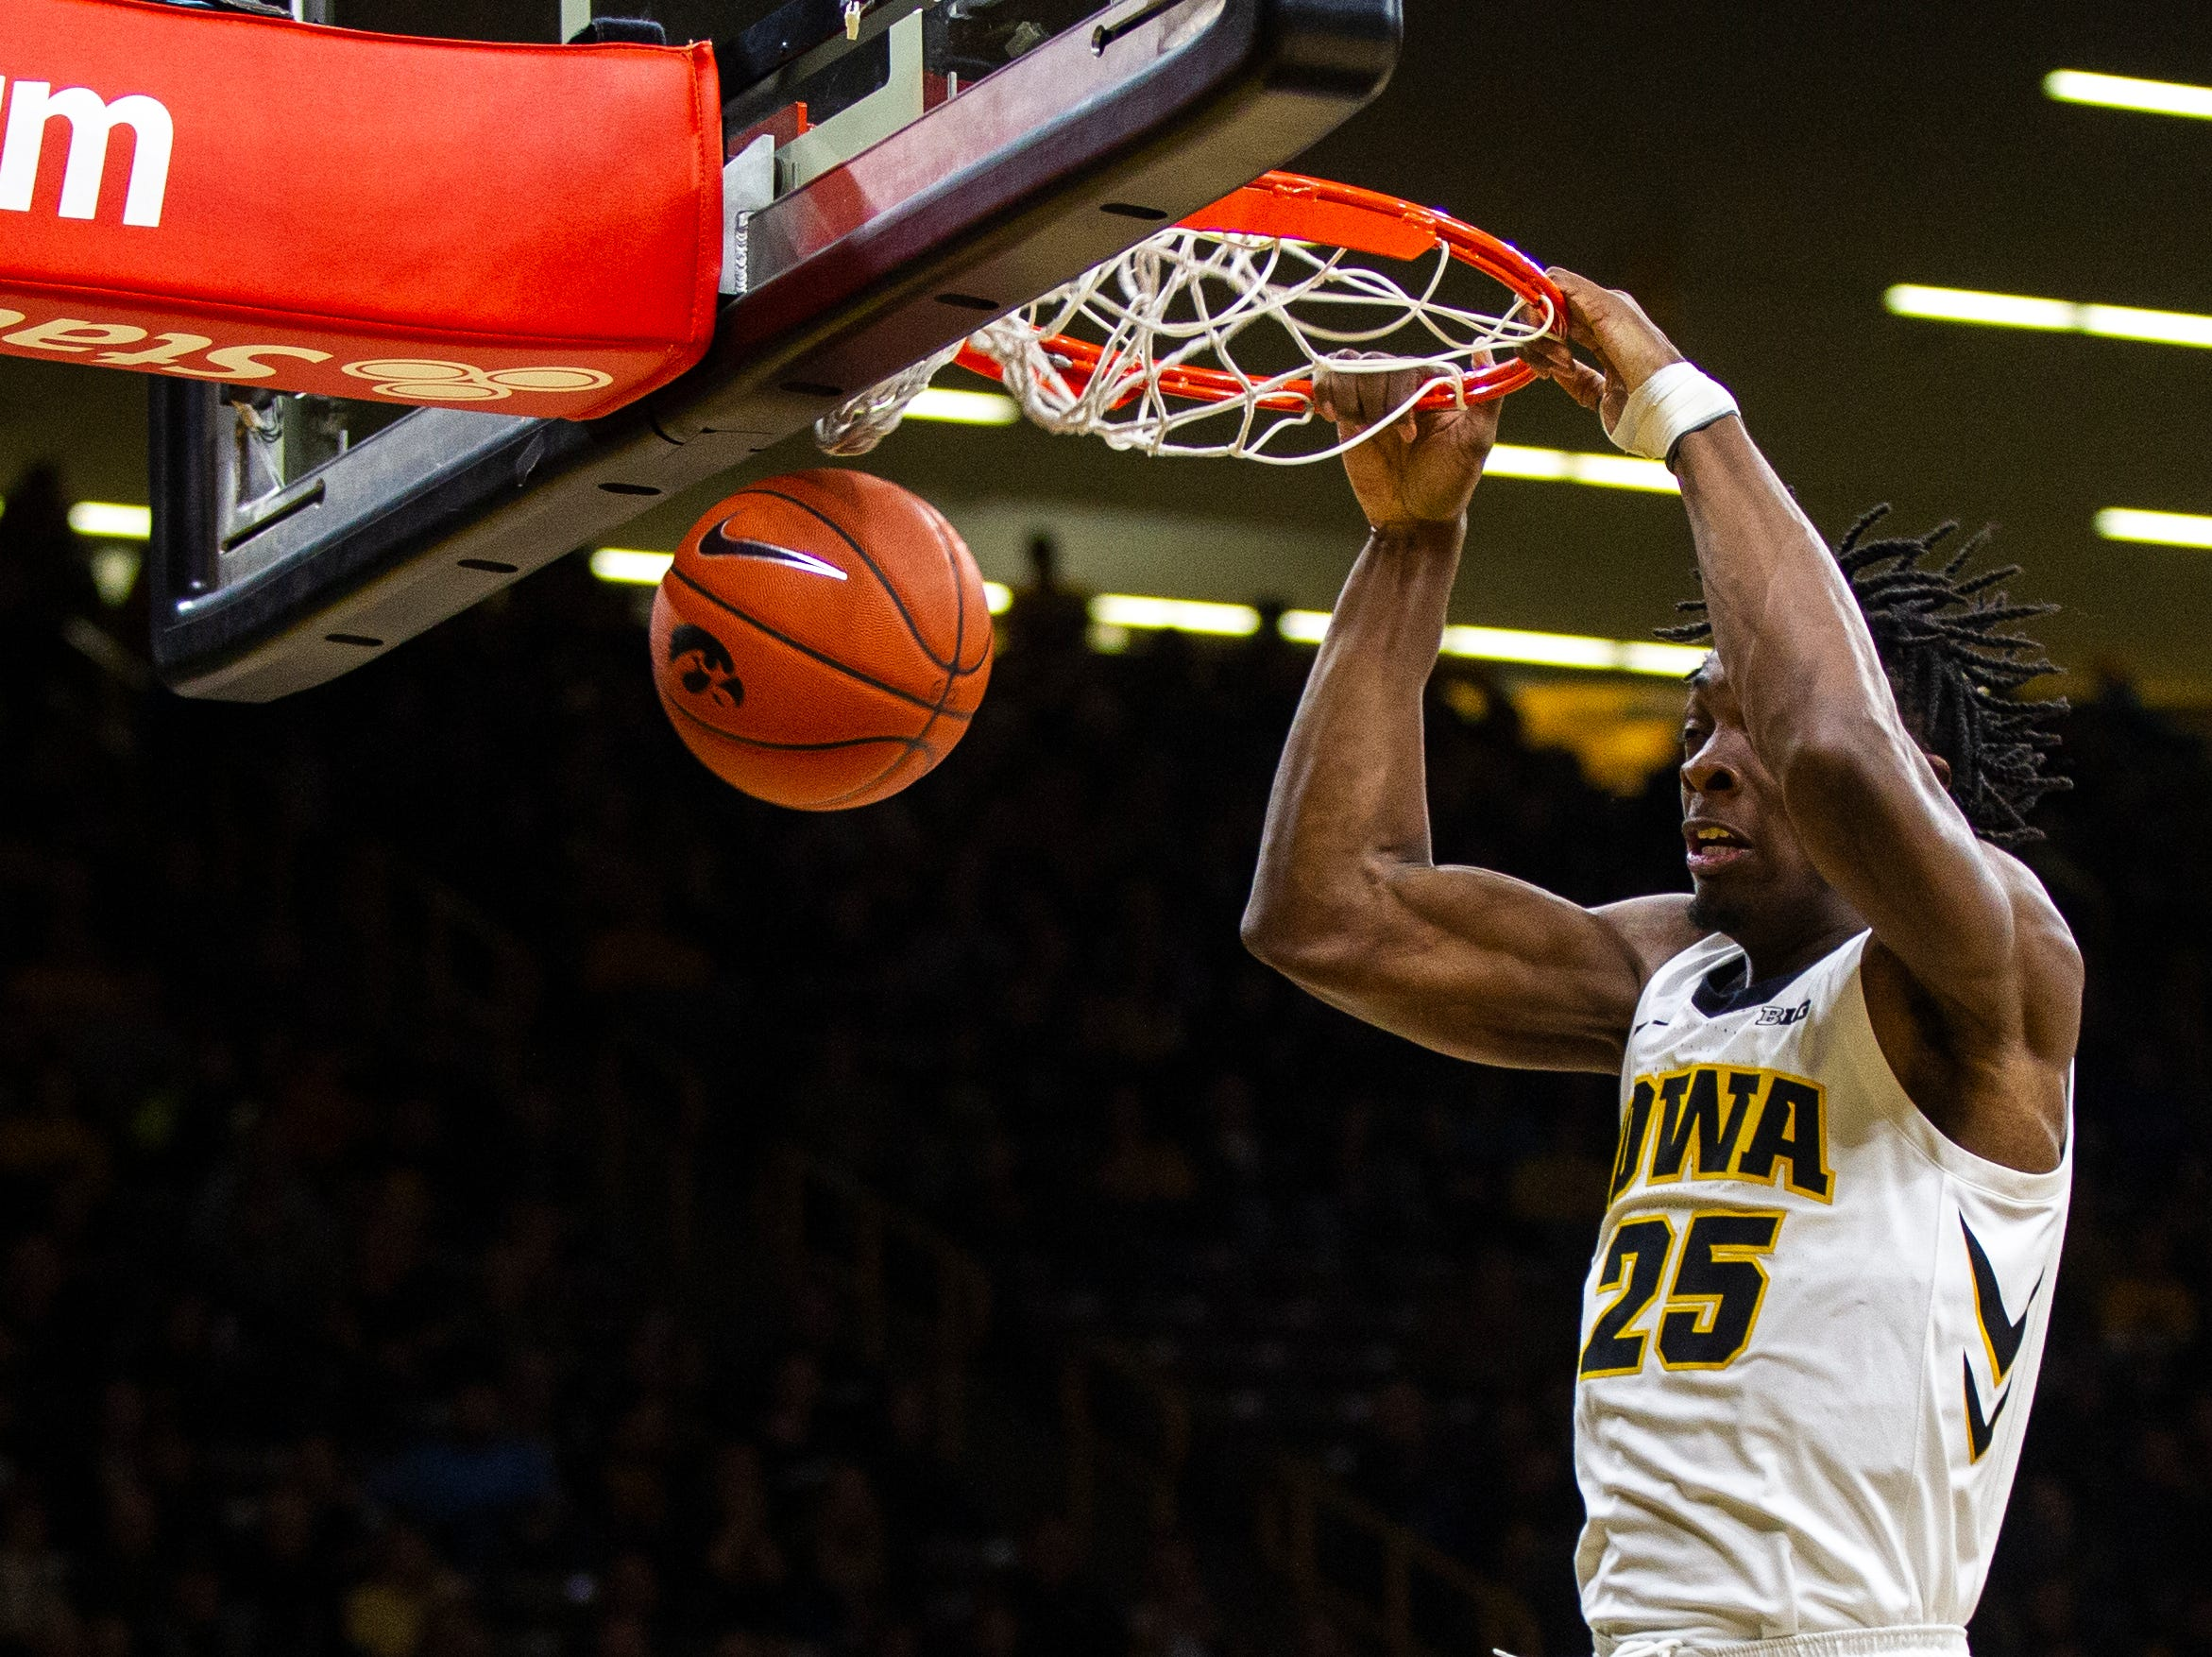 Iowa forward Tyler Cook (25) dunks during an NCAA men's basketball game on Wednesday, Nov. 21, 2018, at Carver-Hawkeye Arena in Iowa City.